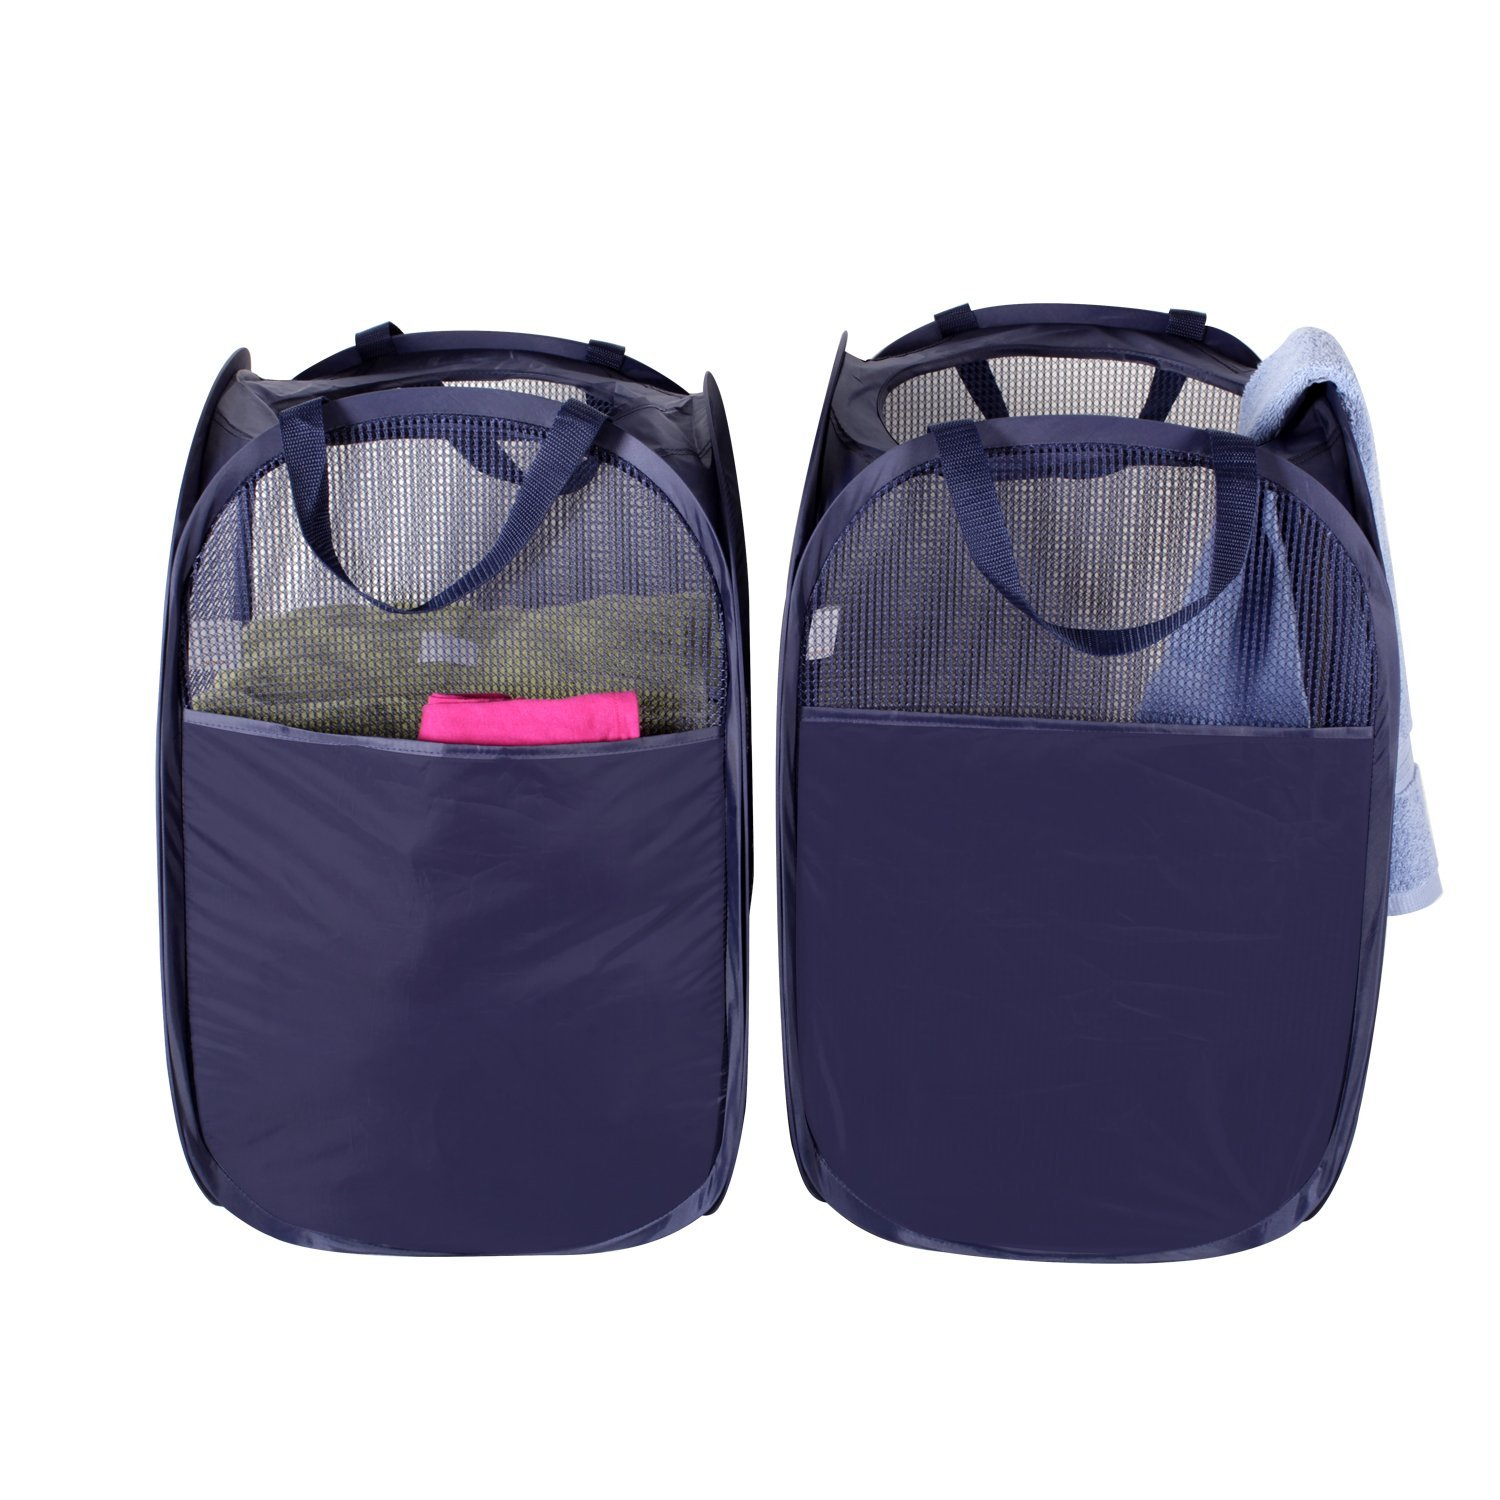 Foldable Pop Up Mesh Hamper Laundry Hamper With Reinforced Carry Handles Pack Of 2 Buy